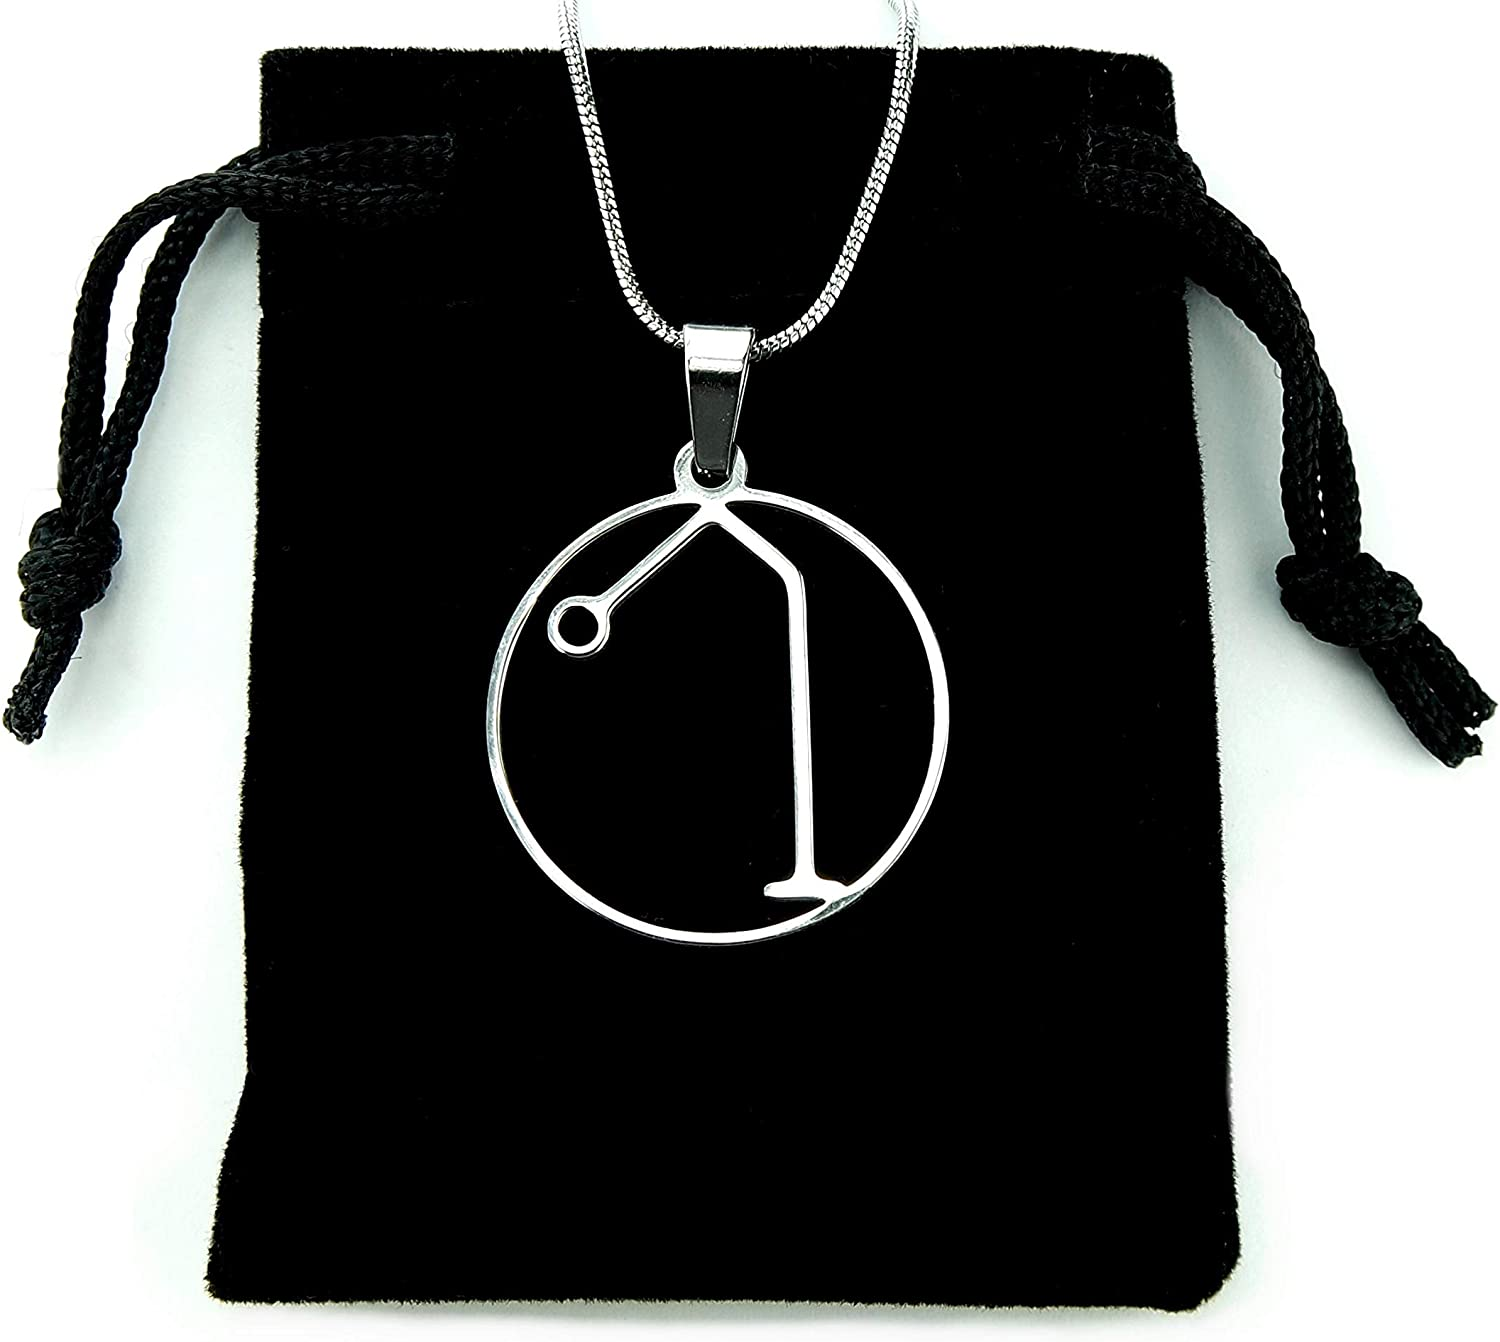 Sigil of Archangel Raphael Necklace Chain Snake Max 84% OFF with Max 65% OFF Powerf 20